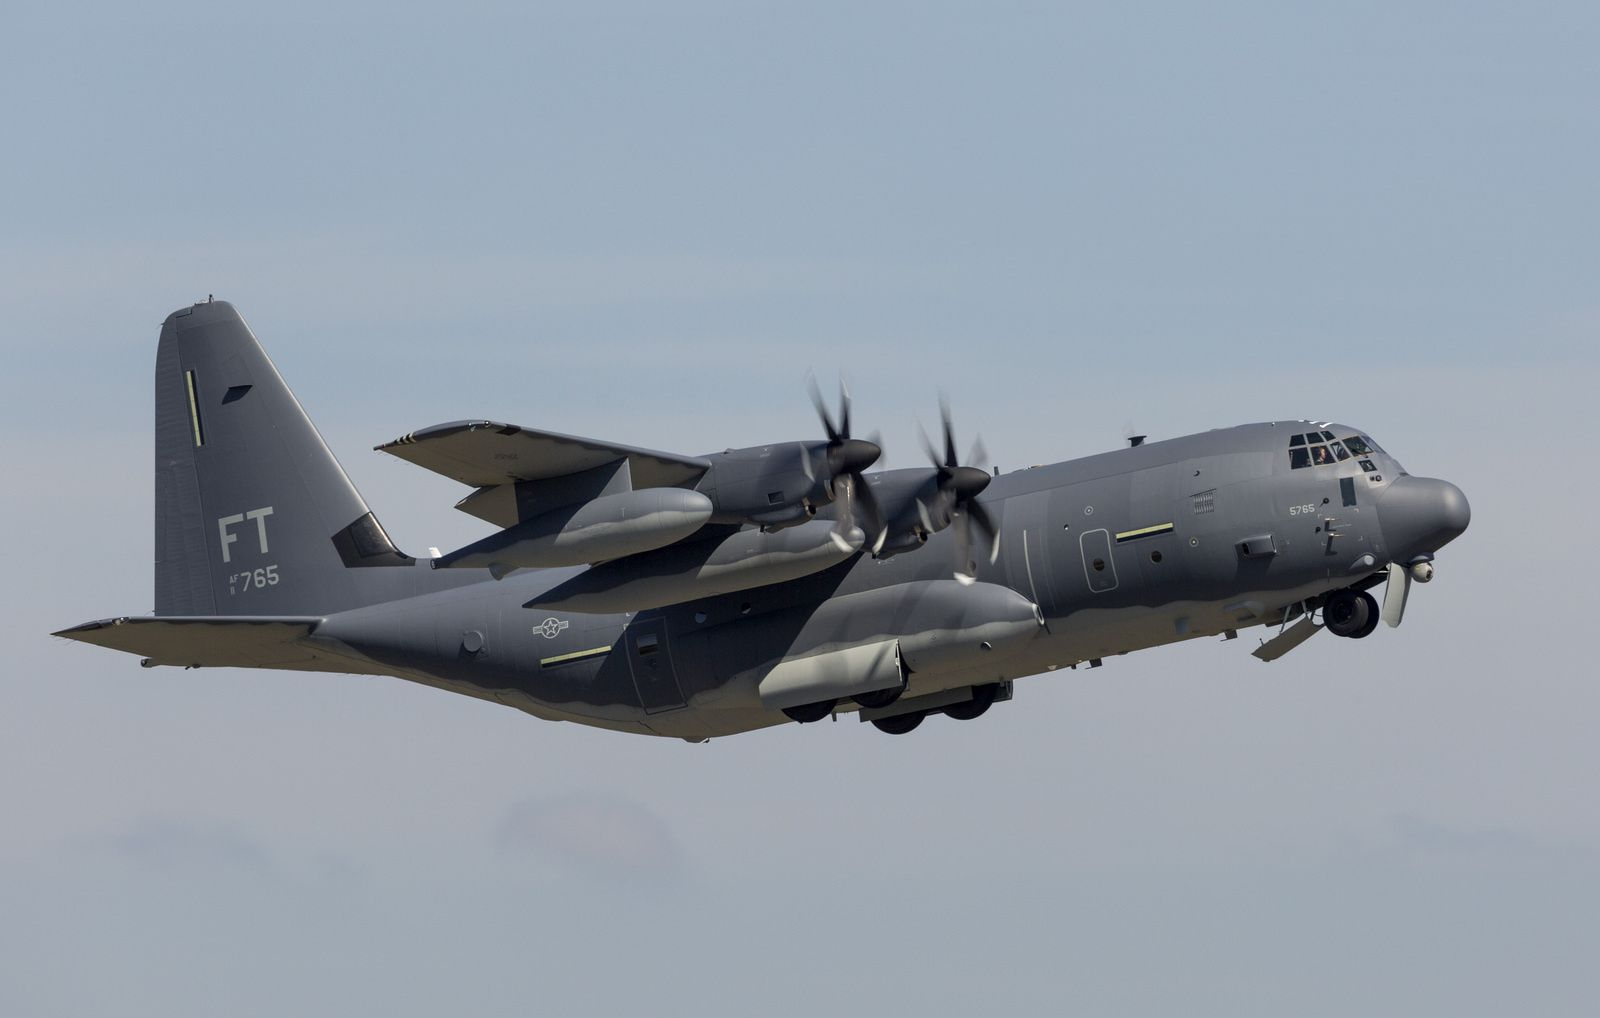 USAF HC-130J Combat King II personnel recovery aircraft – photo Todd R. McQueen LM